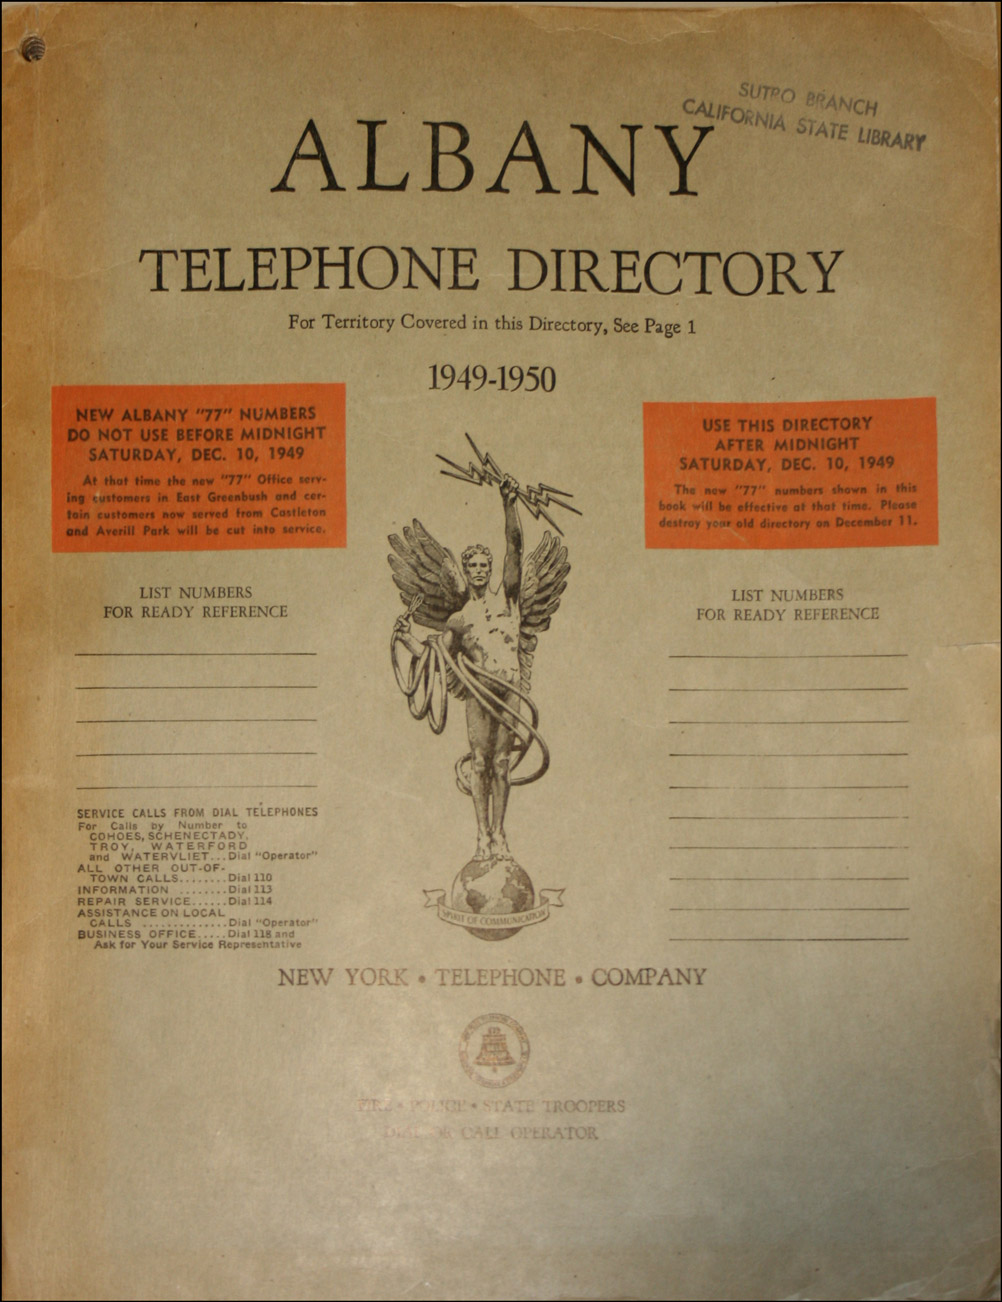 Cover of the 1949-1950 Telephone Directory for Albany, New York